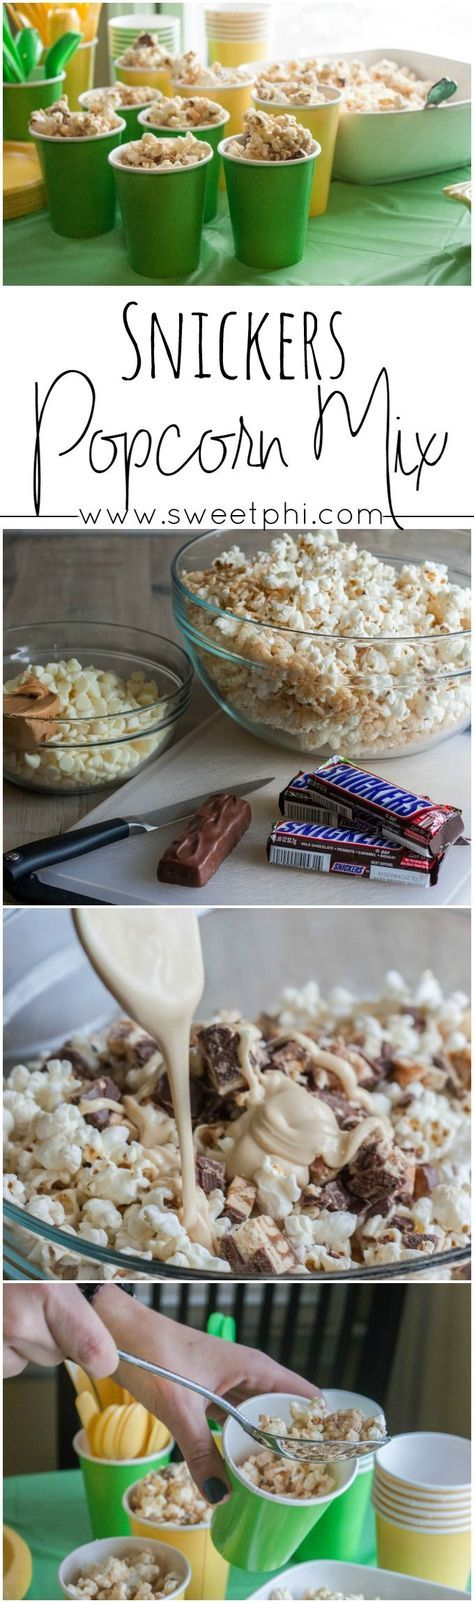 Snickers popcorn mix from @sweetphi , football party food, game day snacks, #gamedayfood #footballparty #popcornmix , the best and most addictive popcorn mix, the best popcorn snack, white chocolate peanut butter popcorn http://www.sweetphi.com/green-gold-football-party-skittles-cupcake-snickers-popcorn-mix/